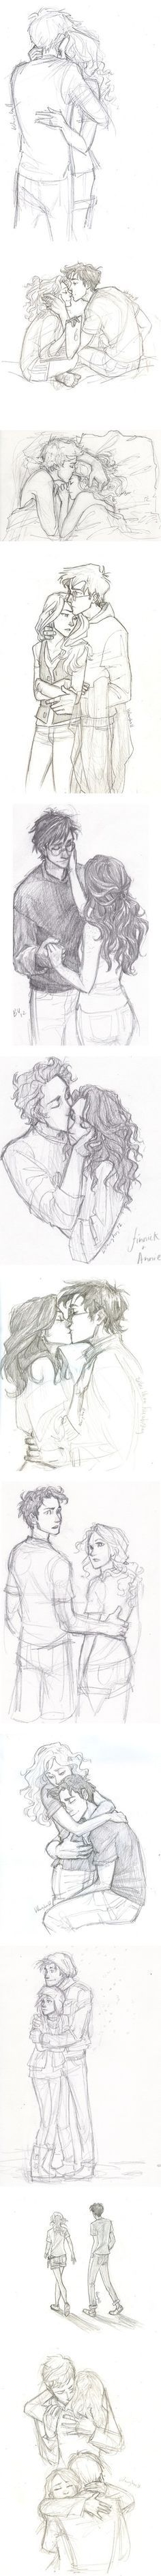 Love the feel and emotion captured in these sketches!  :}